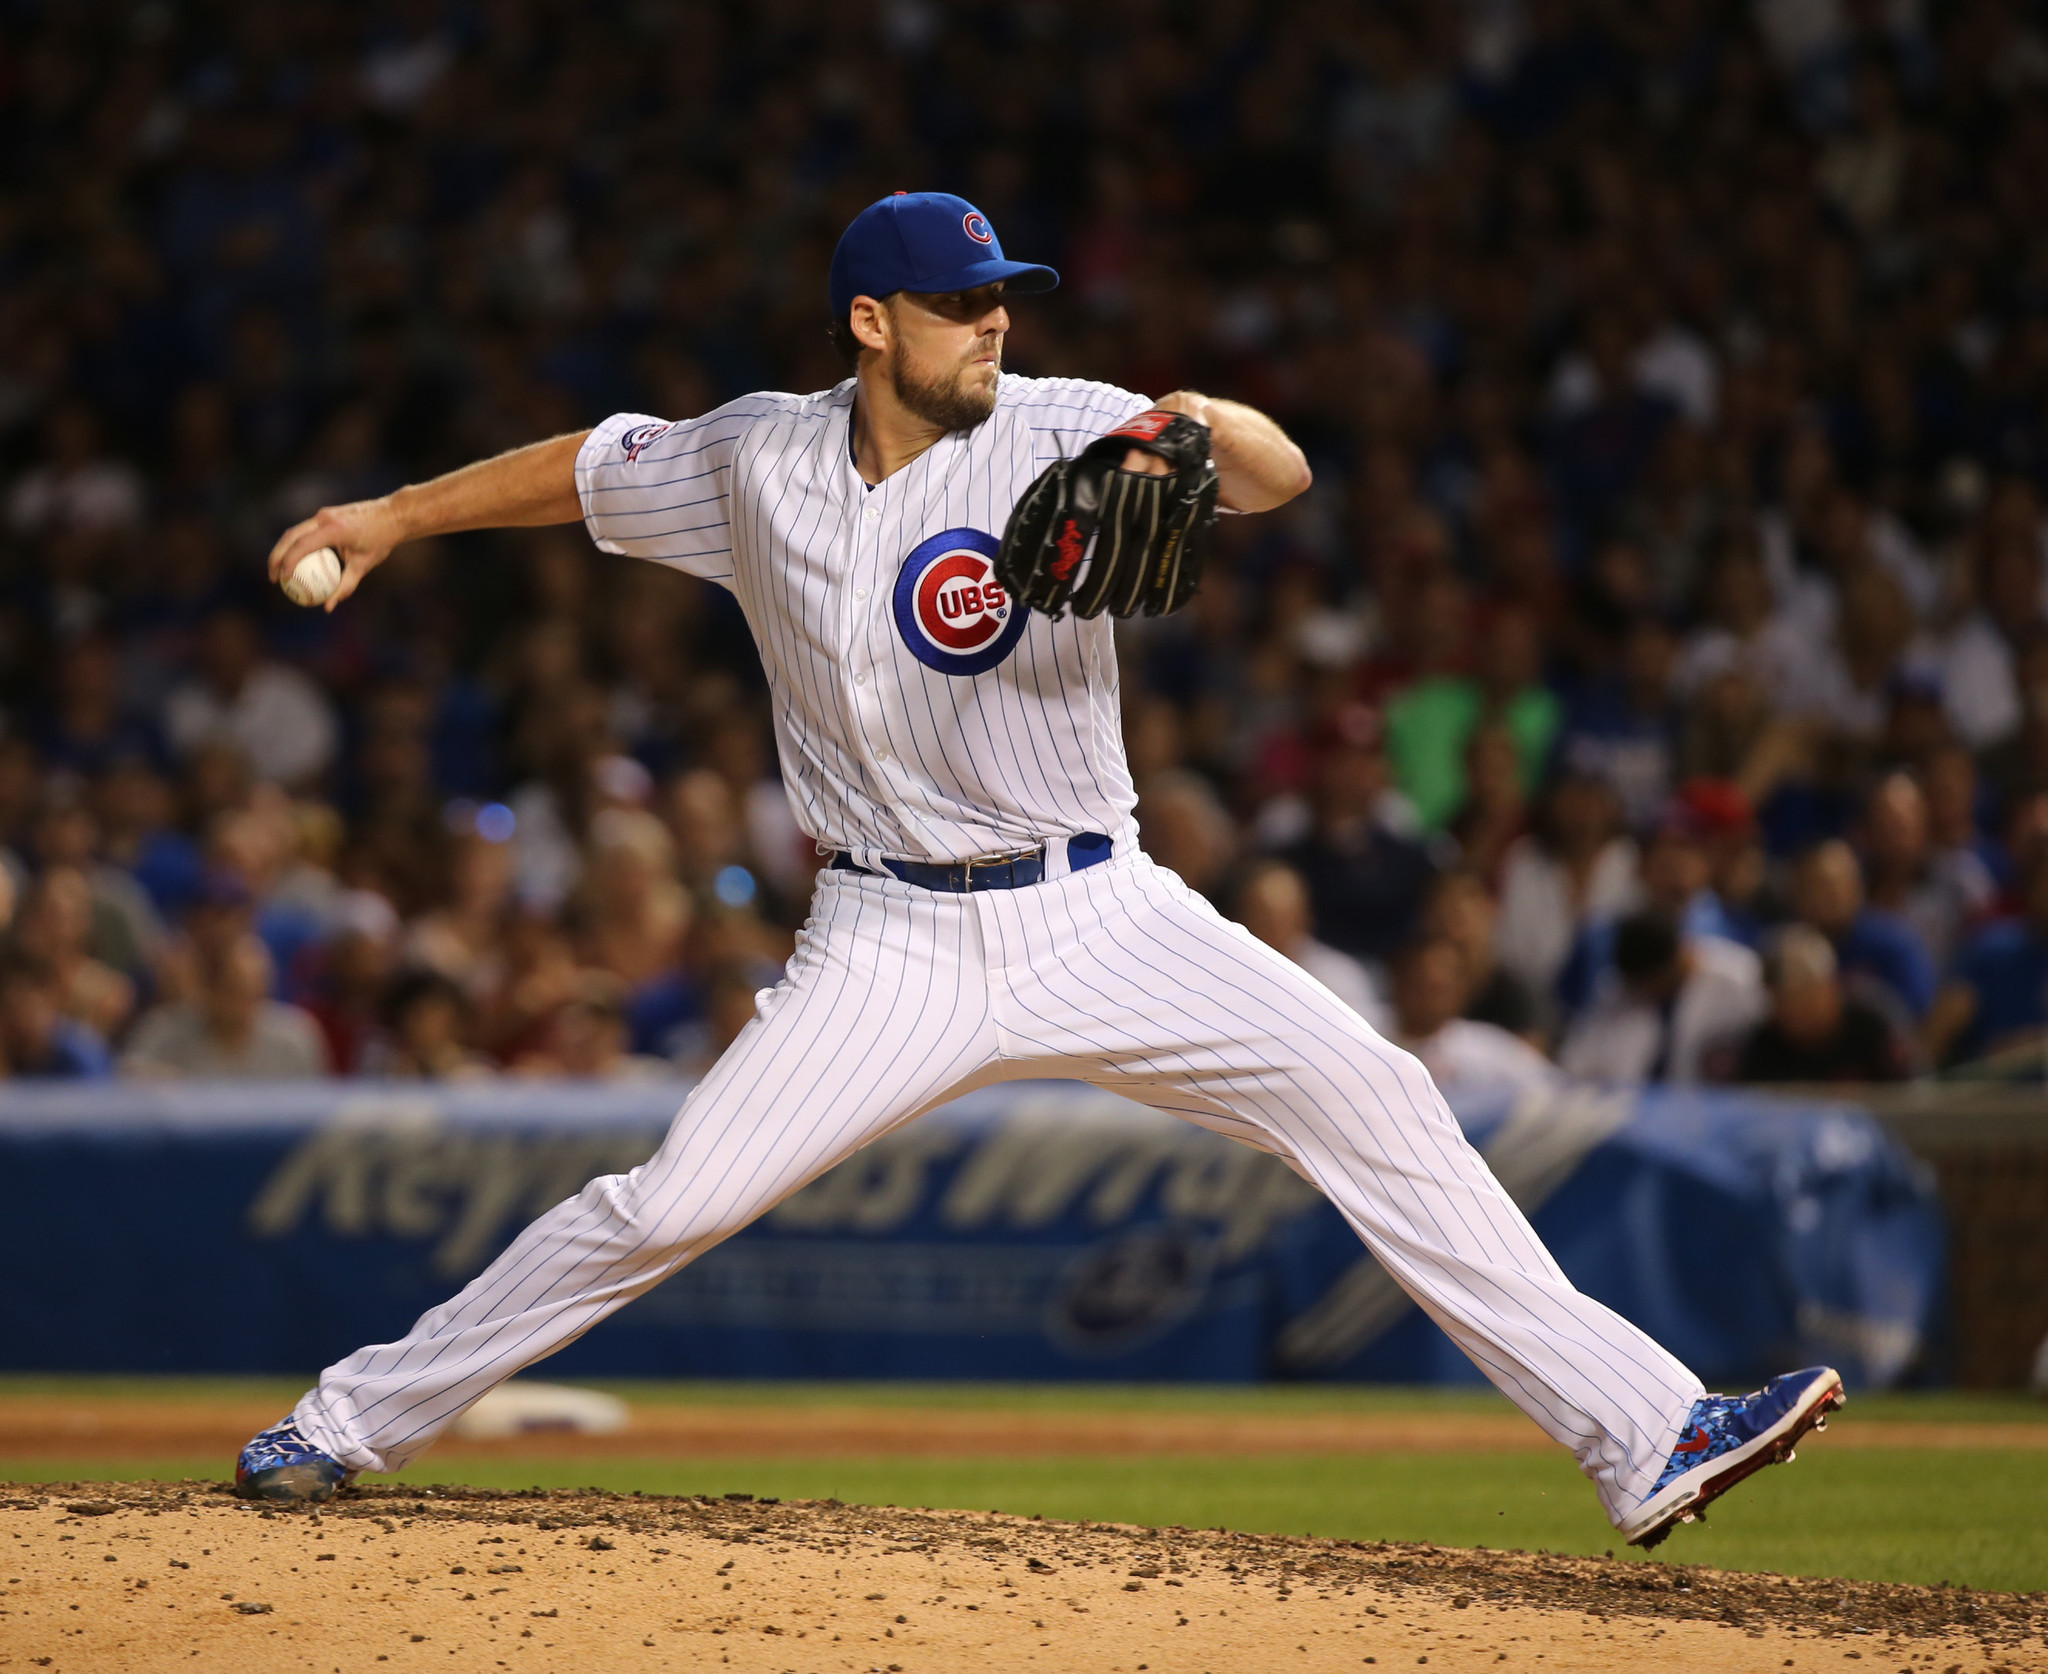 Ct-lackey-rondon-return-update-bits-cubs-spt-0827-20160826